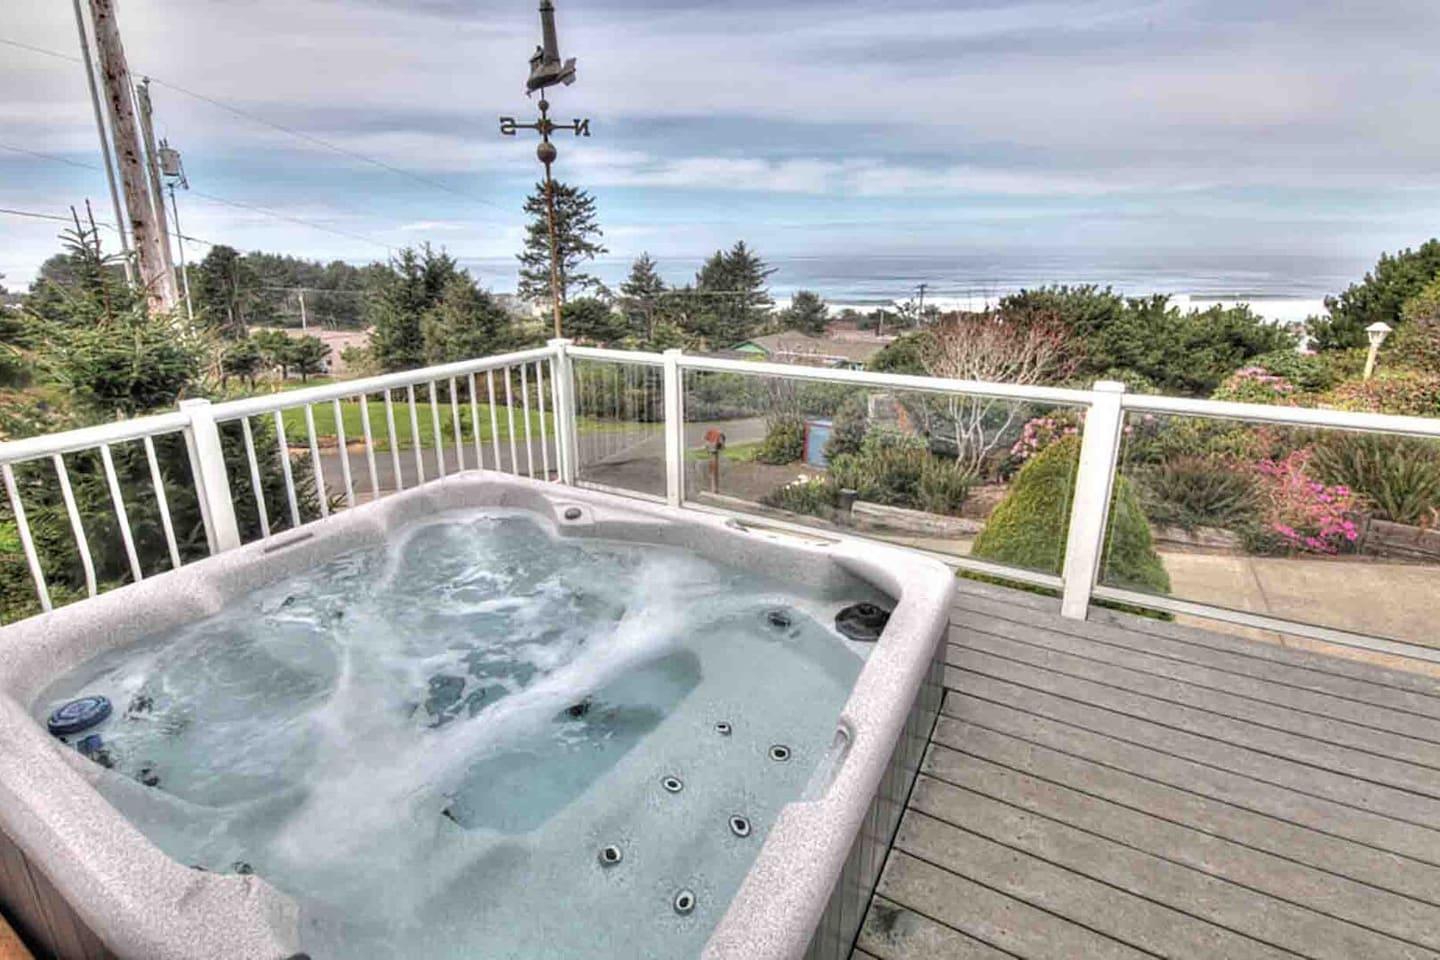 Ocean view hot tub is perfect after a day at the beach.